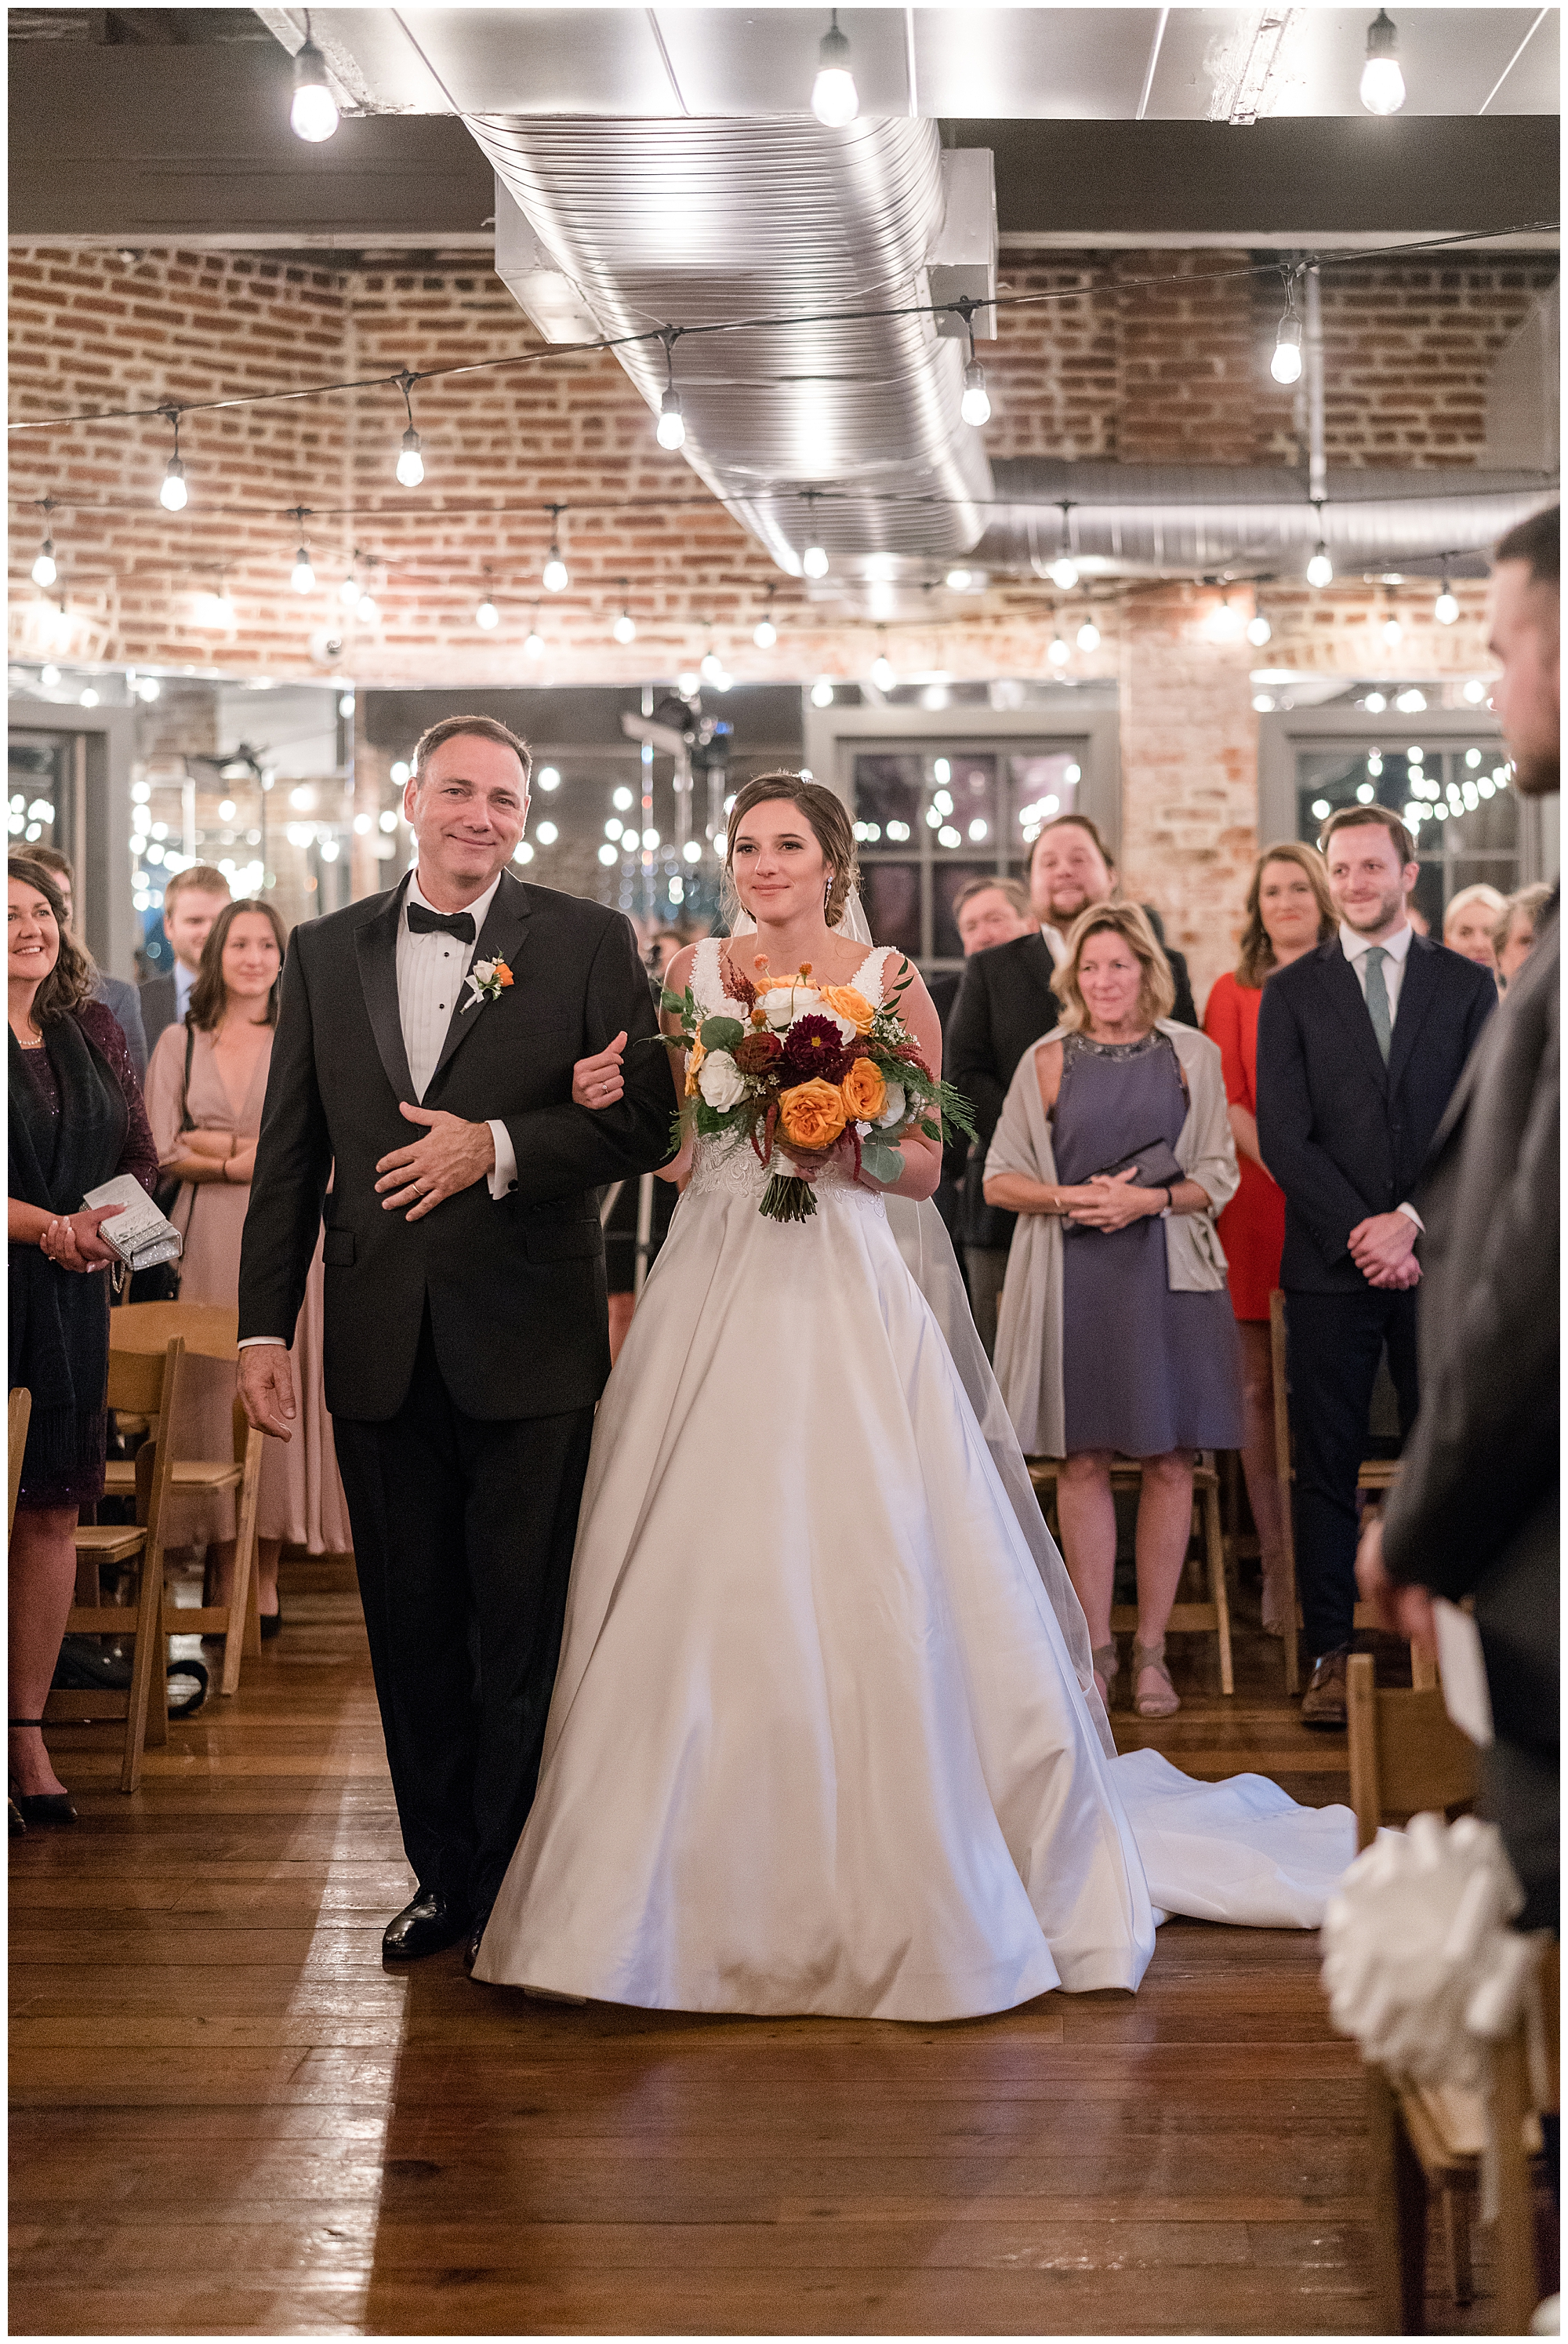 A father walks his daughter down the aisle at Toolbox DC during a Washington DC wedding.